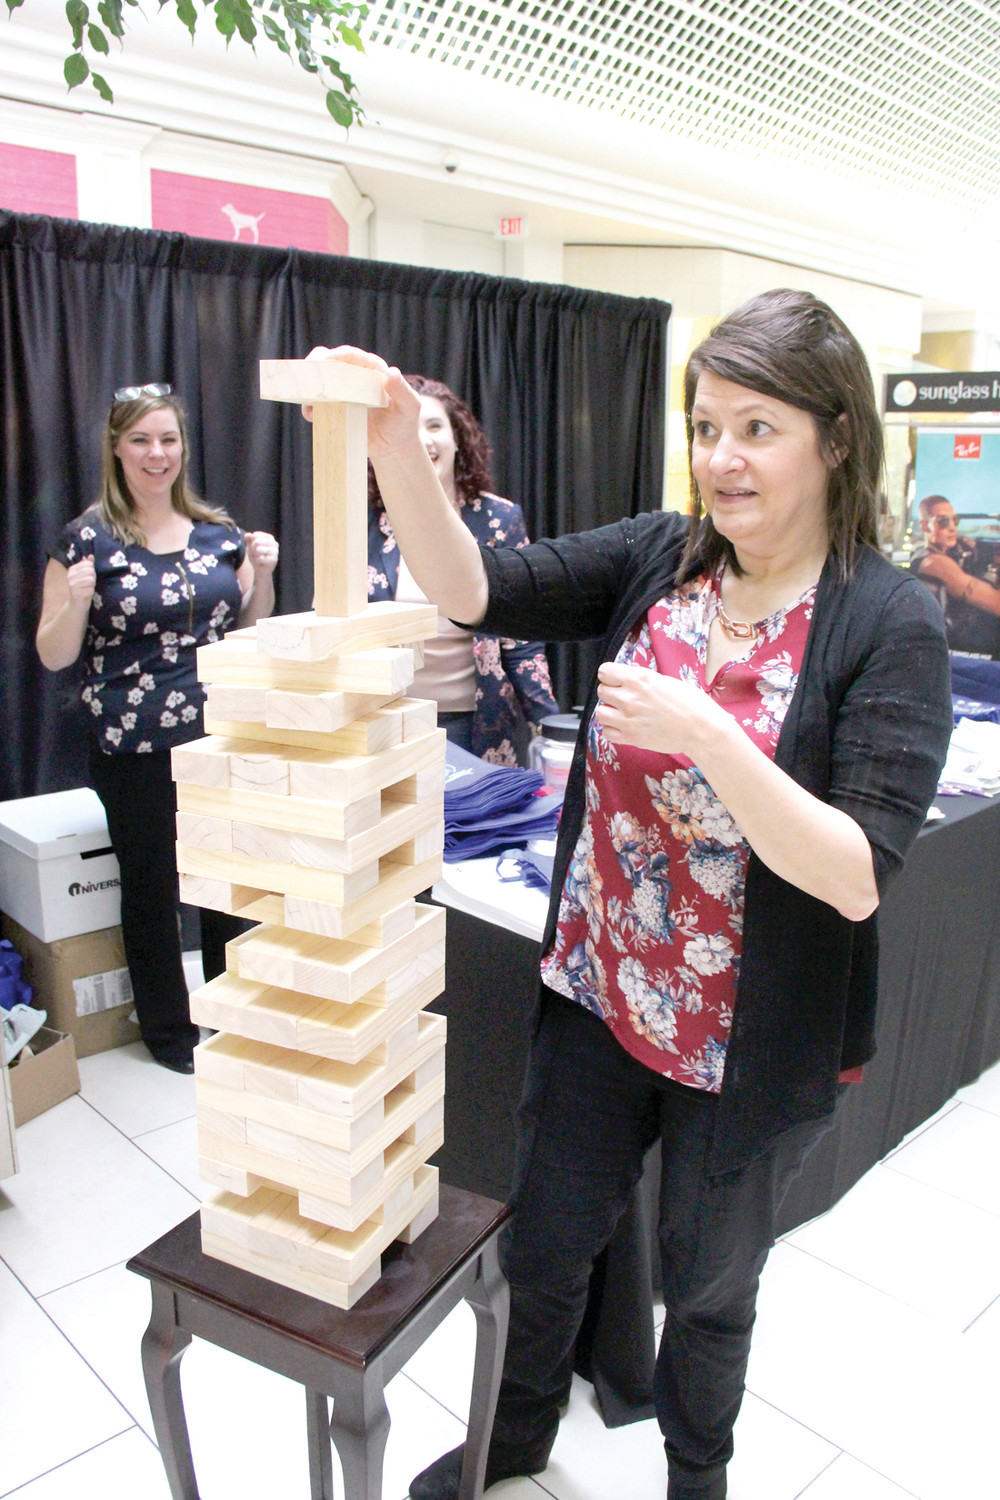 HOW HIGH WILL IT GO? Jennifer Lema of Picerne Real Estate that operated a booth at the fair balances a block in the giant Jenga that had mall visitors reaching for heights before the structure tumbled.